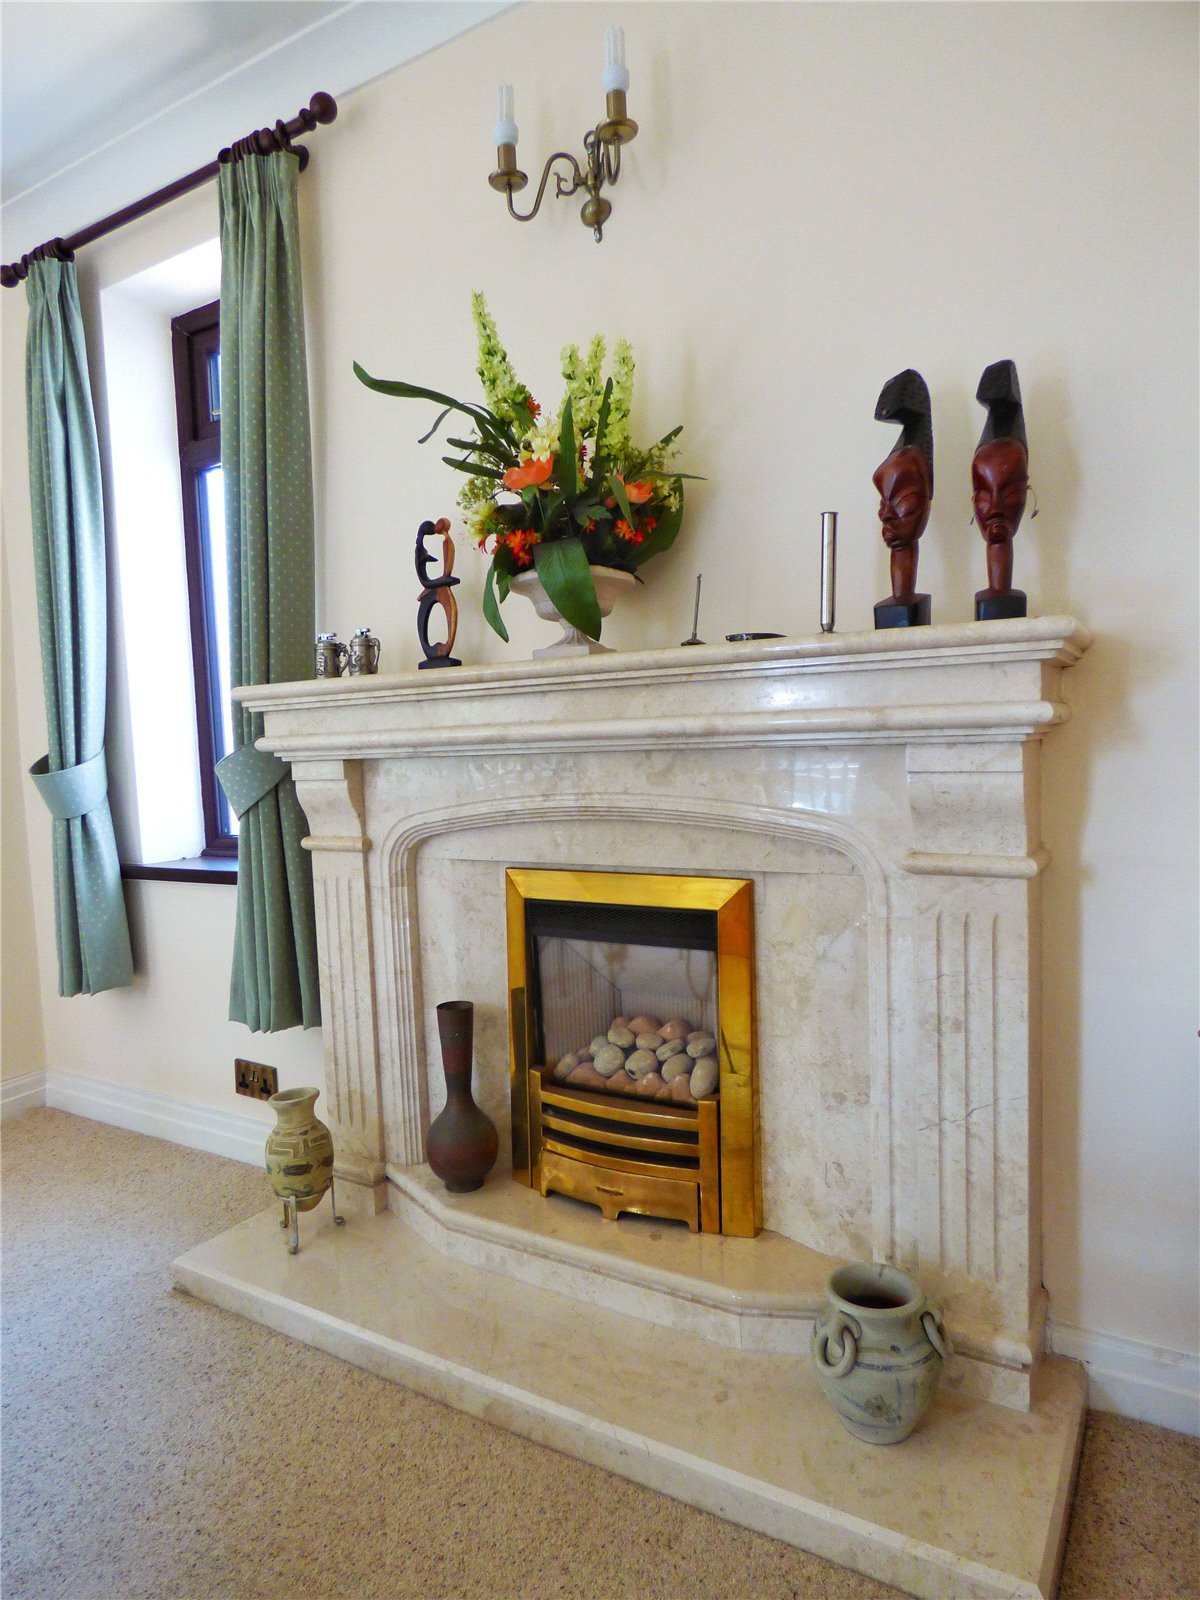 Feature Fire-Place: